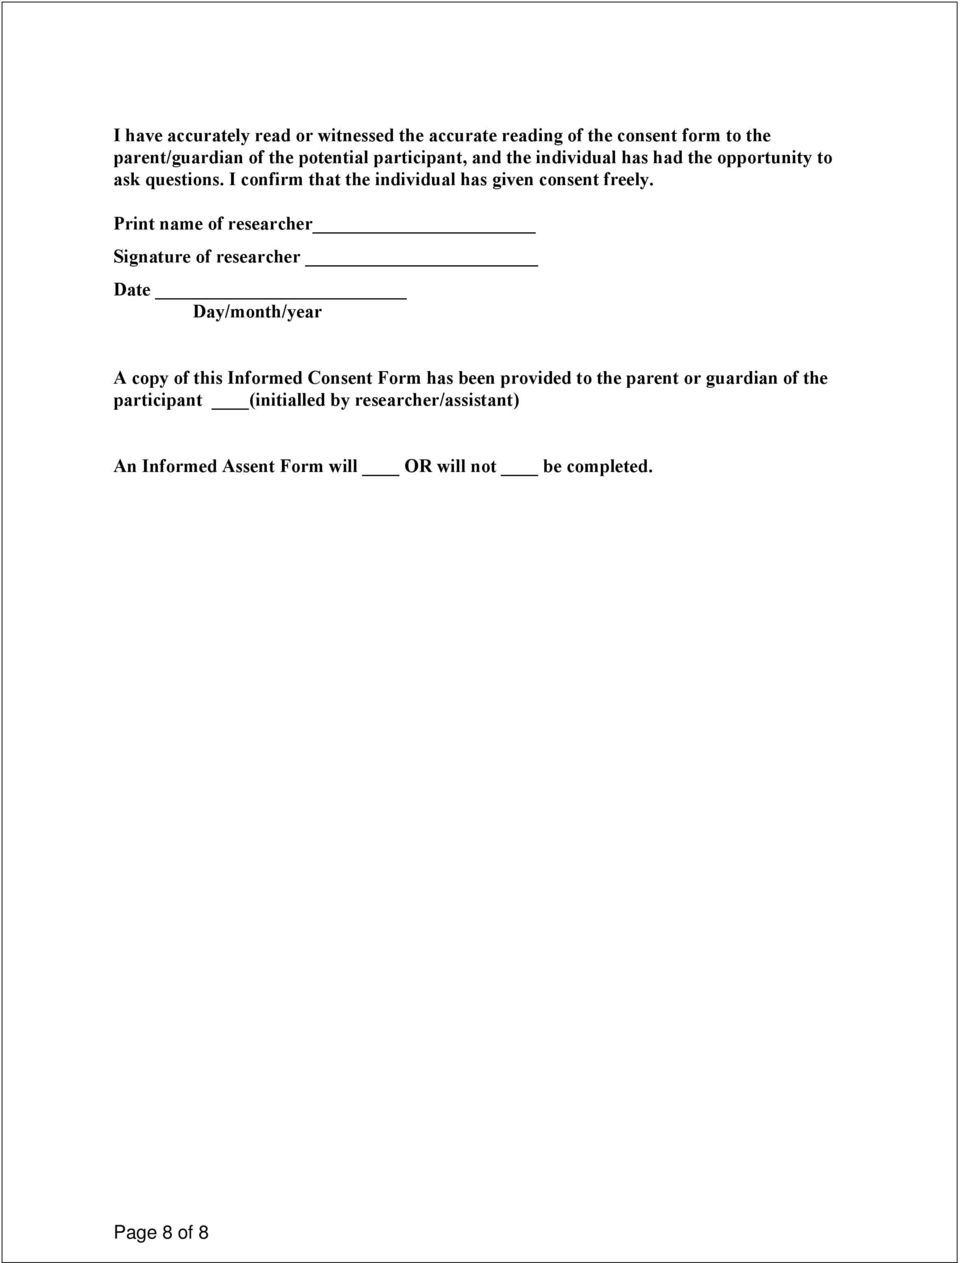 Print name of researcher Signature of researcher Date Day/month/year A copy of this Informed Consent Form has been provided to